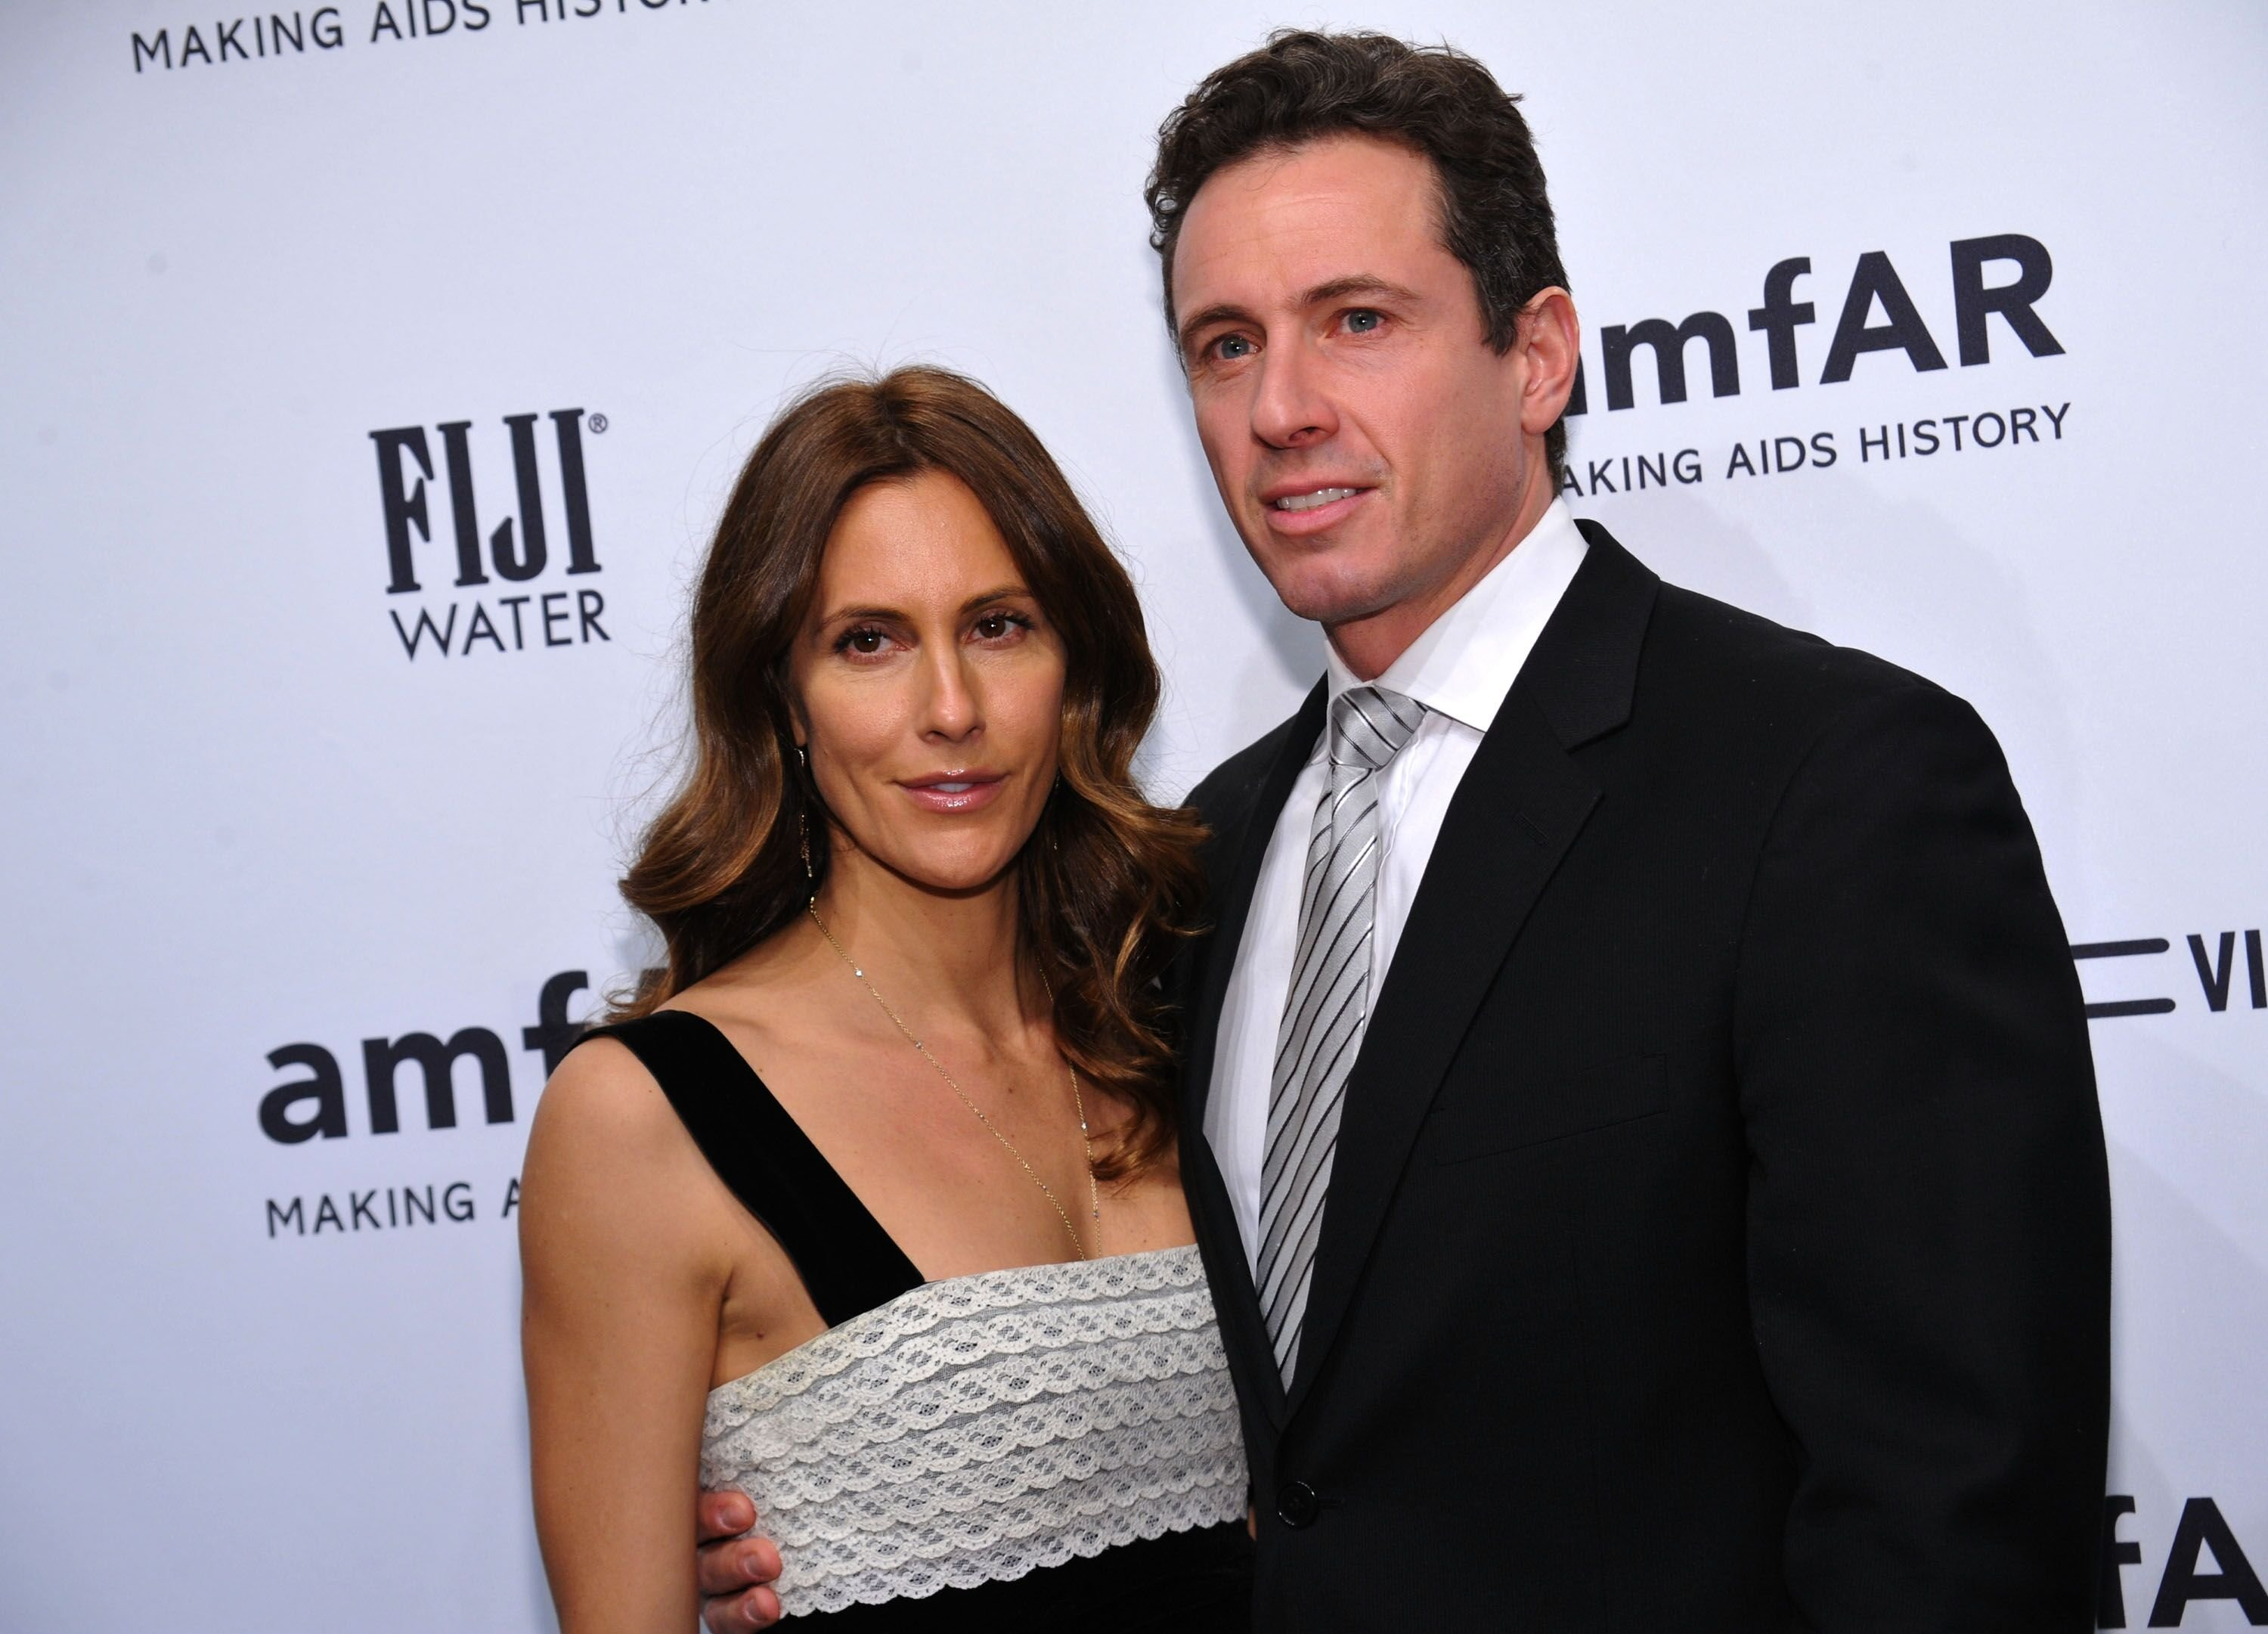 Cristina and Chris Cuomo at the amfAR New York Gala to kick off Fall Fashion Week on February 6, 2013, in New York City | Photo: Bryan Bedder/Getty Images